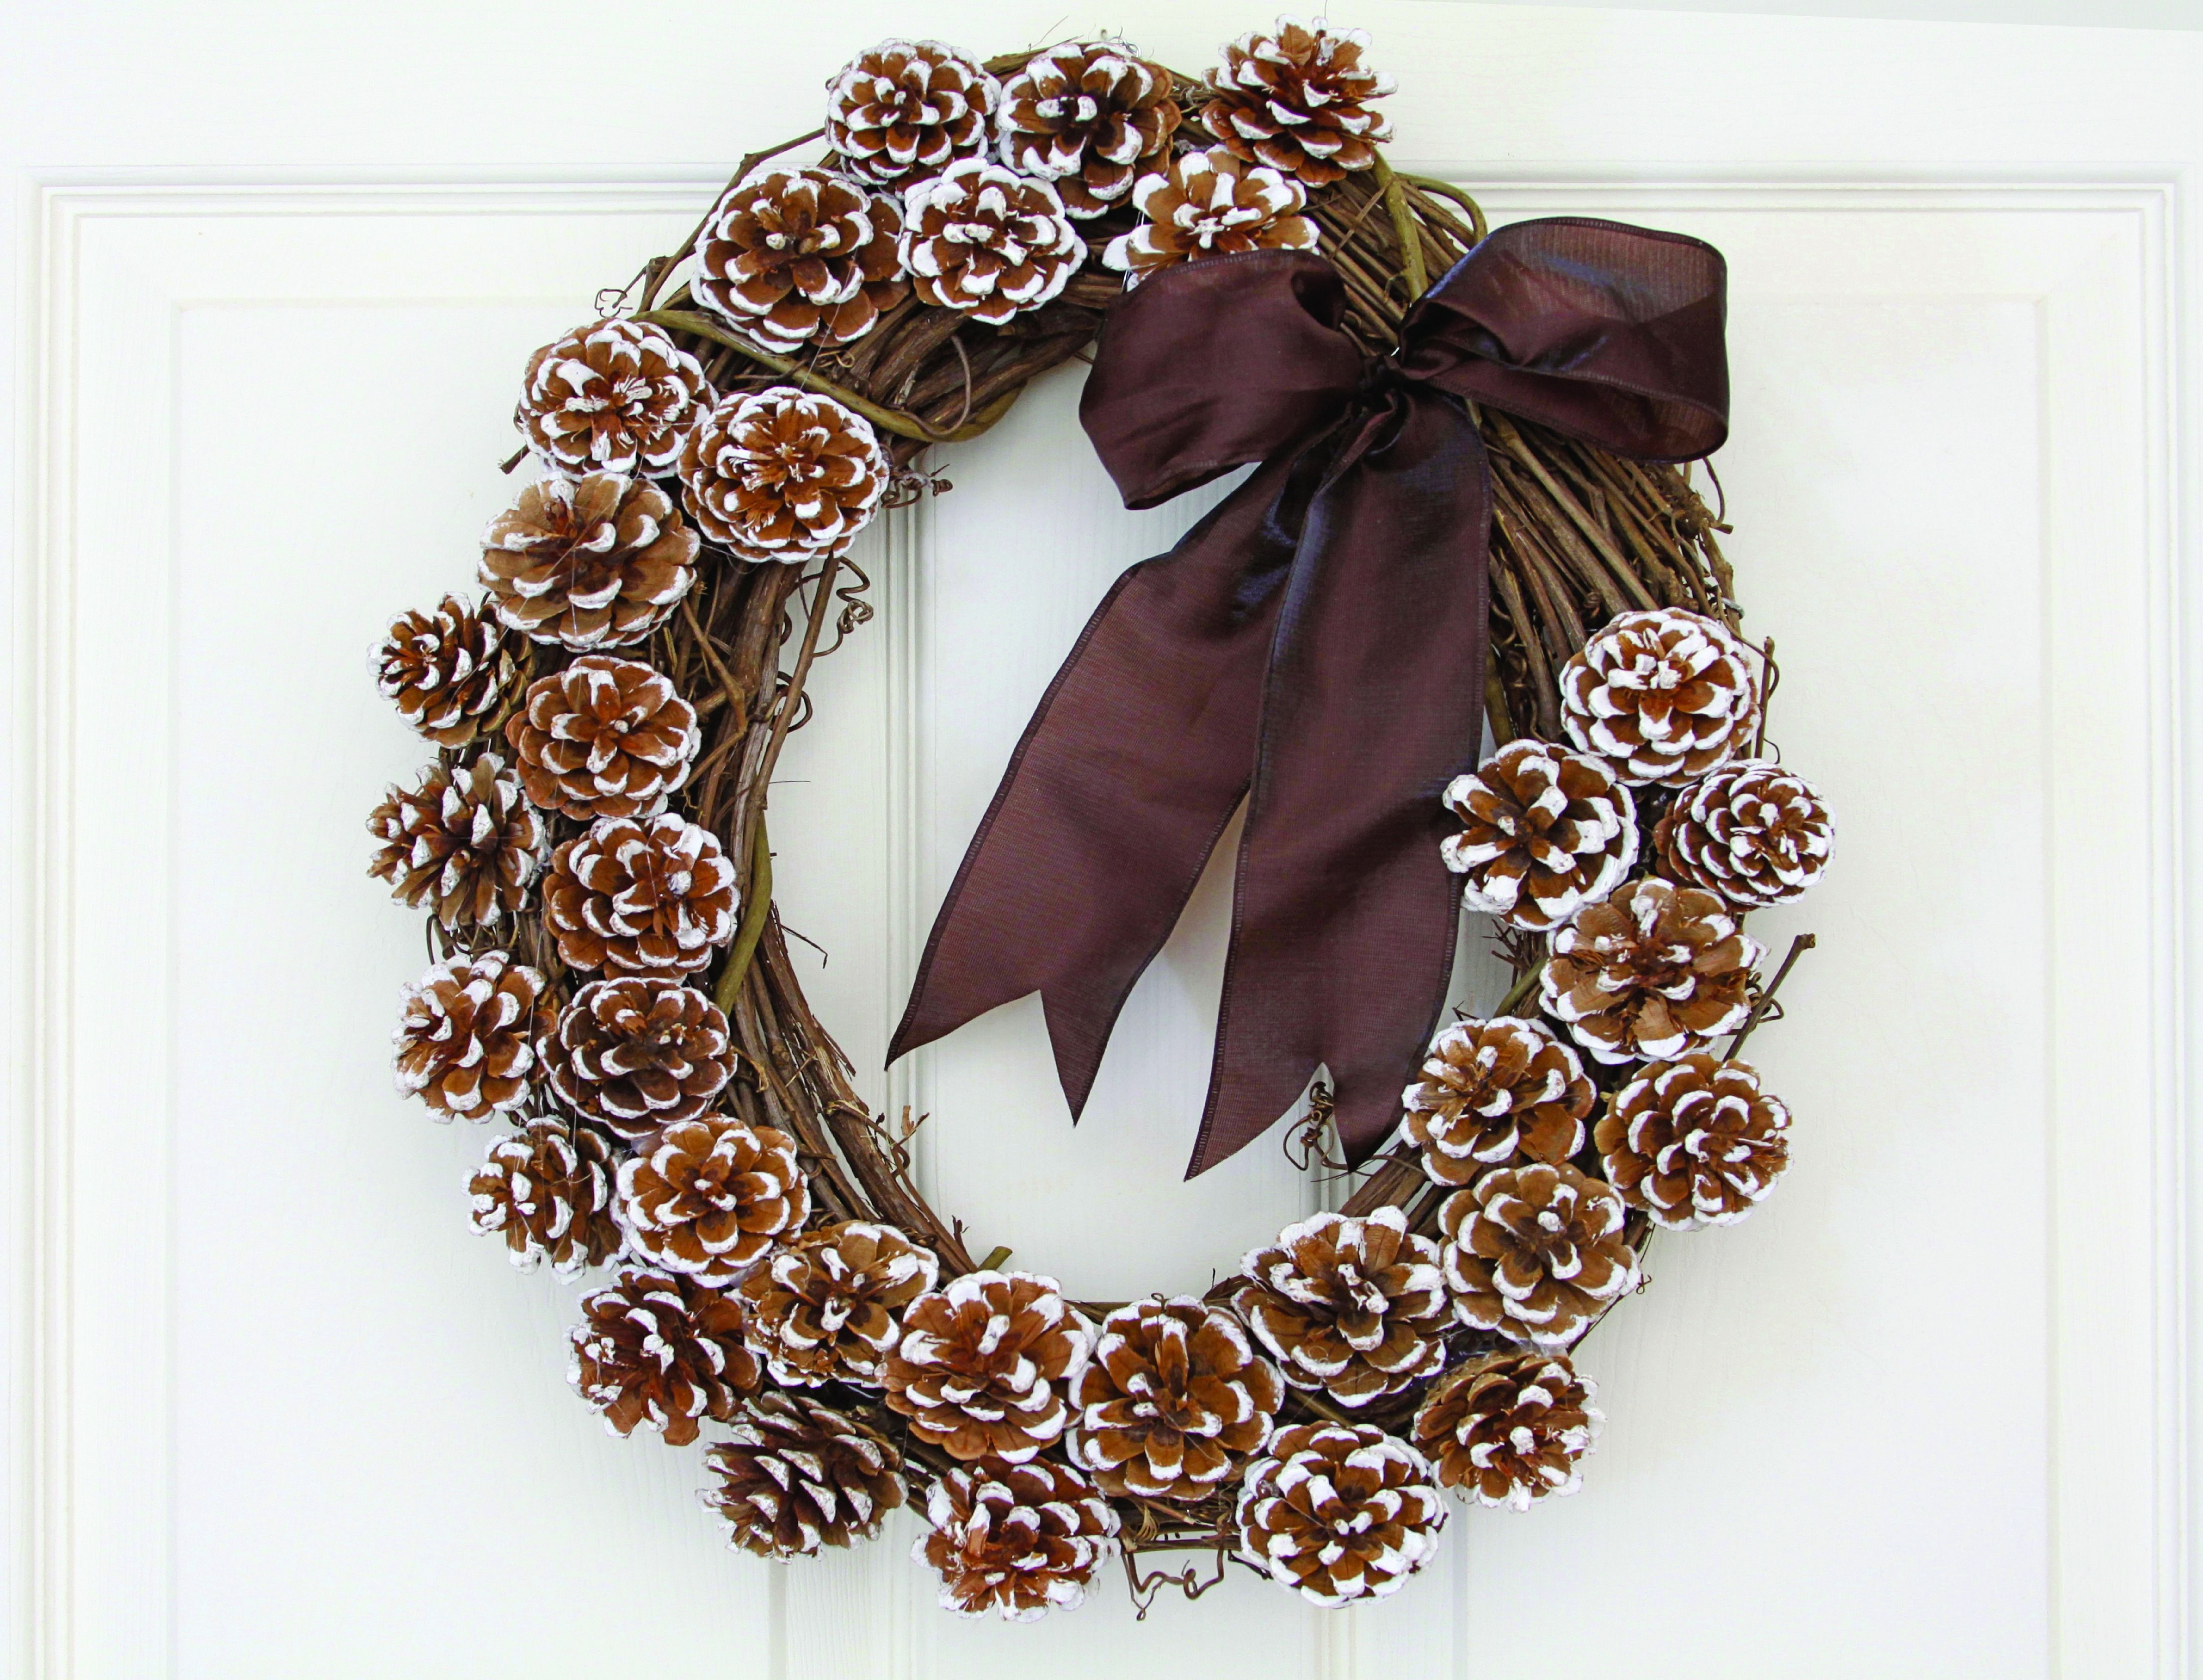 40 diy christmas wreath ideas how to make a homemade holiday wreath womansdaycom - Wire Wreath Frame With Ties